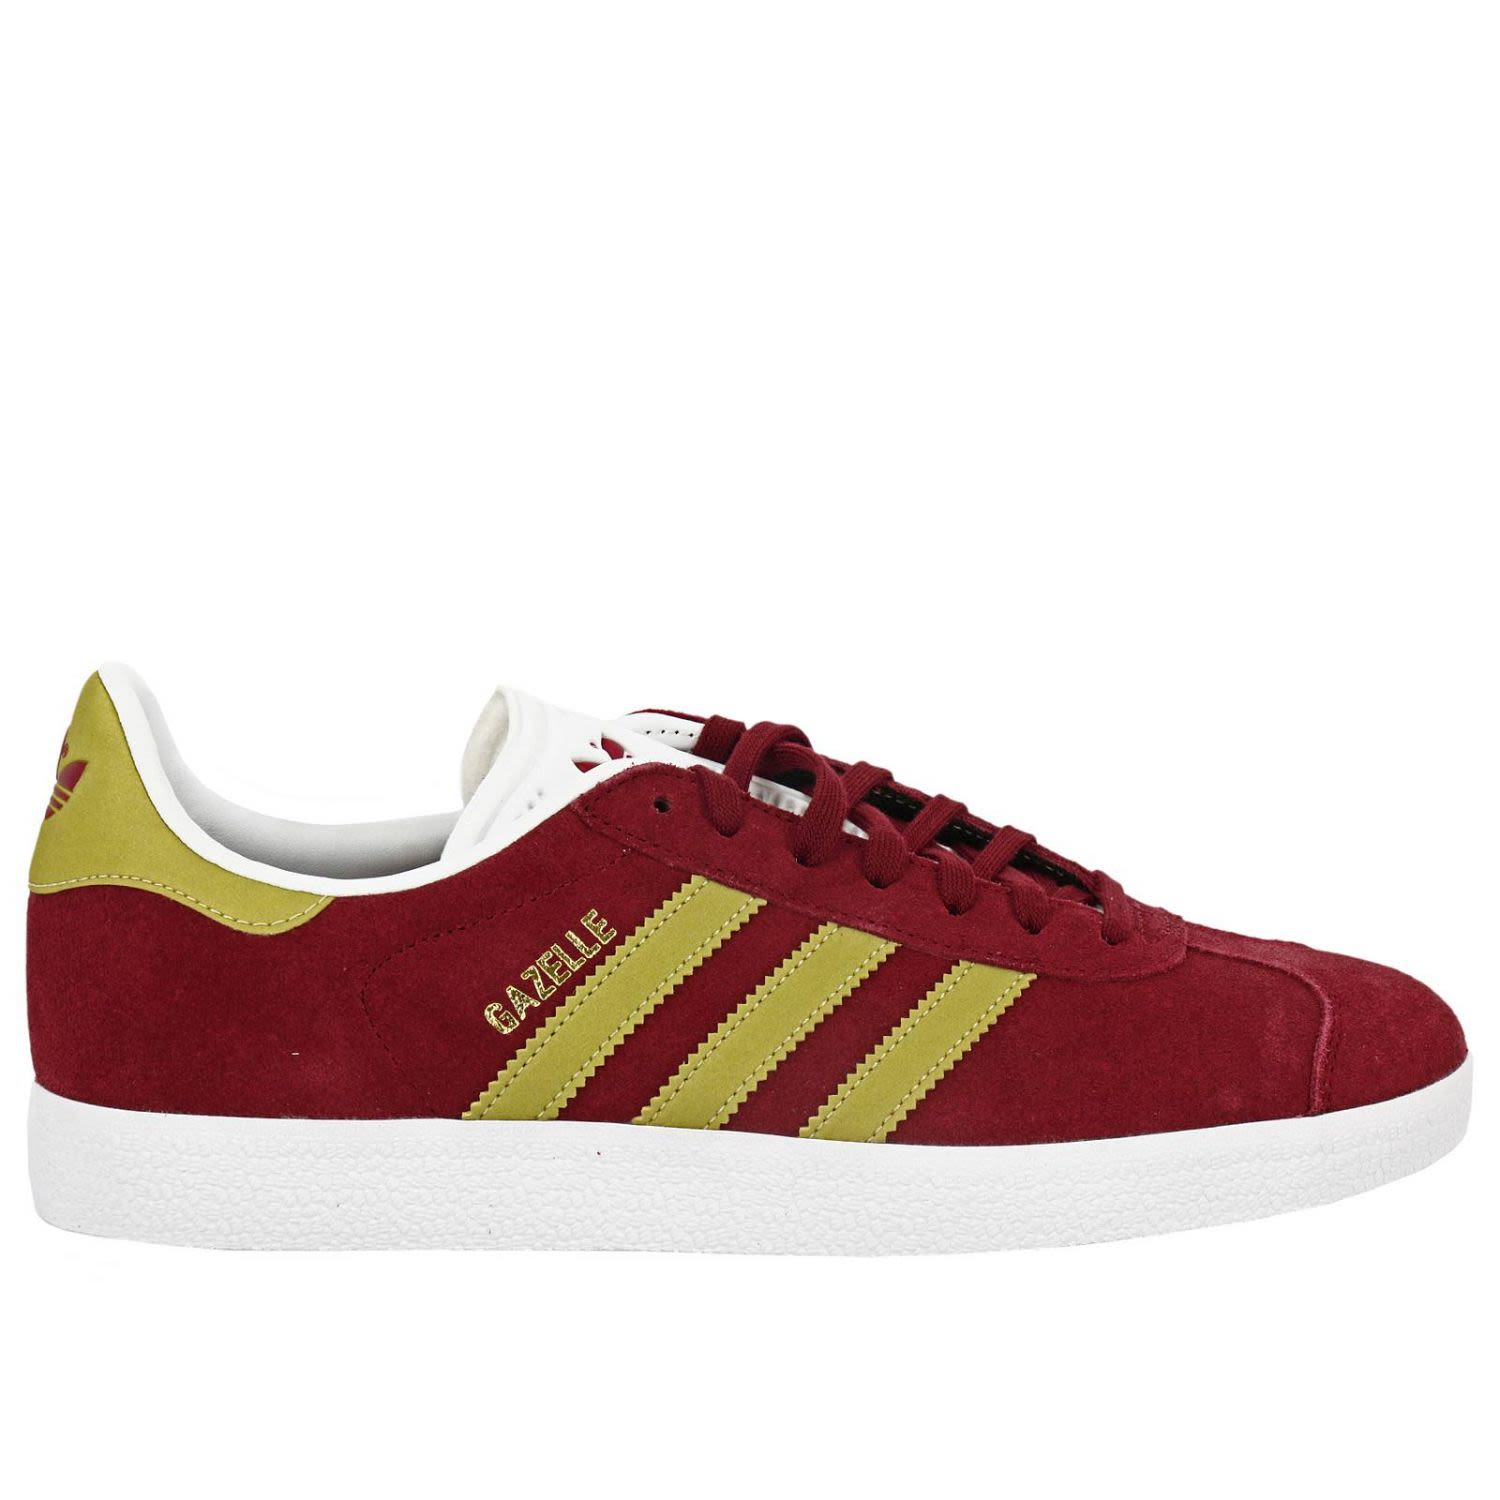 adidas branches worldwide Free adidas store locations around adidas predator mania the adidas beckham cleats world shipping returns on all orders adidas has global corporate headquarters in germany, and many other business locations around the world such as portland or, hong kong, toronto, taiwan, england.